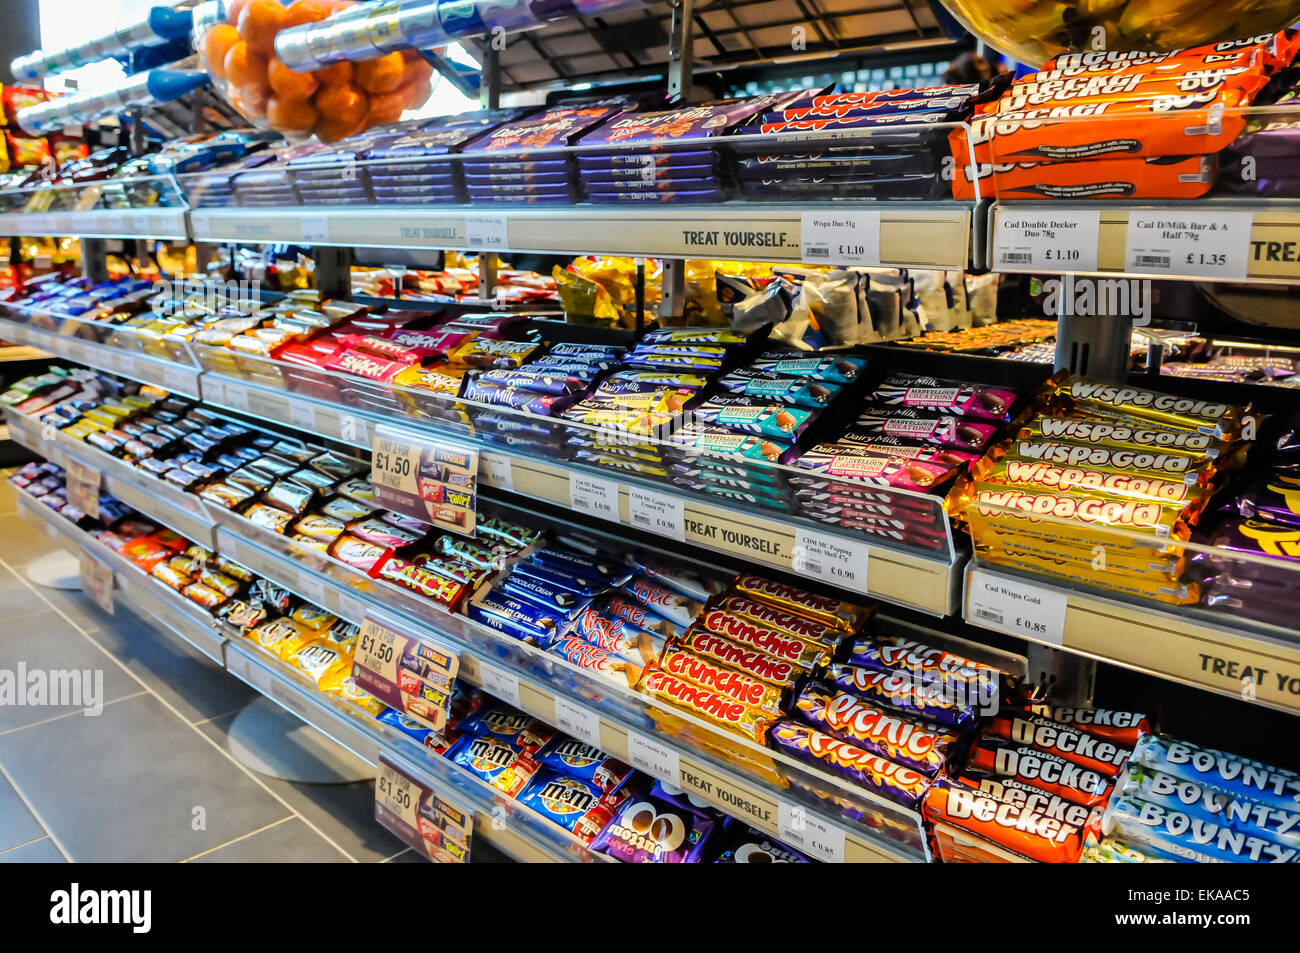 Sweets and chocolate bars on sale in a motorway service station ...